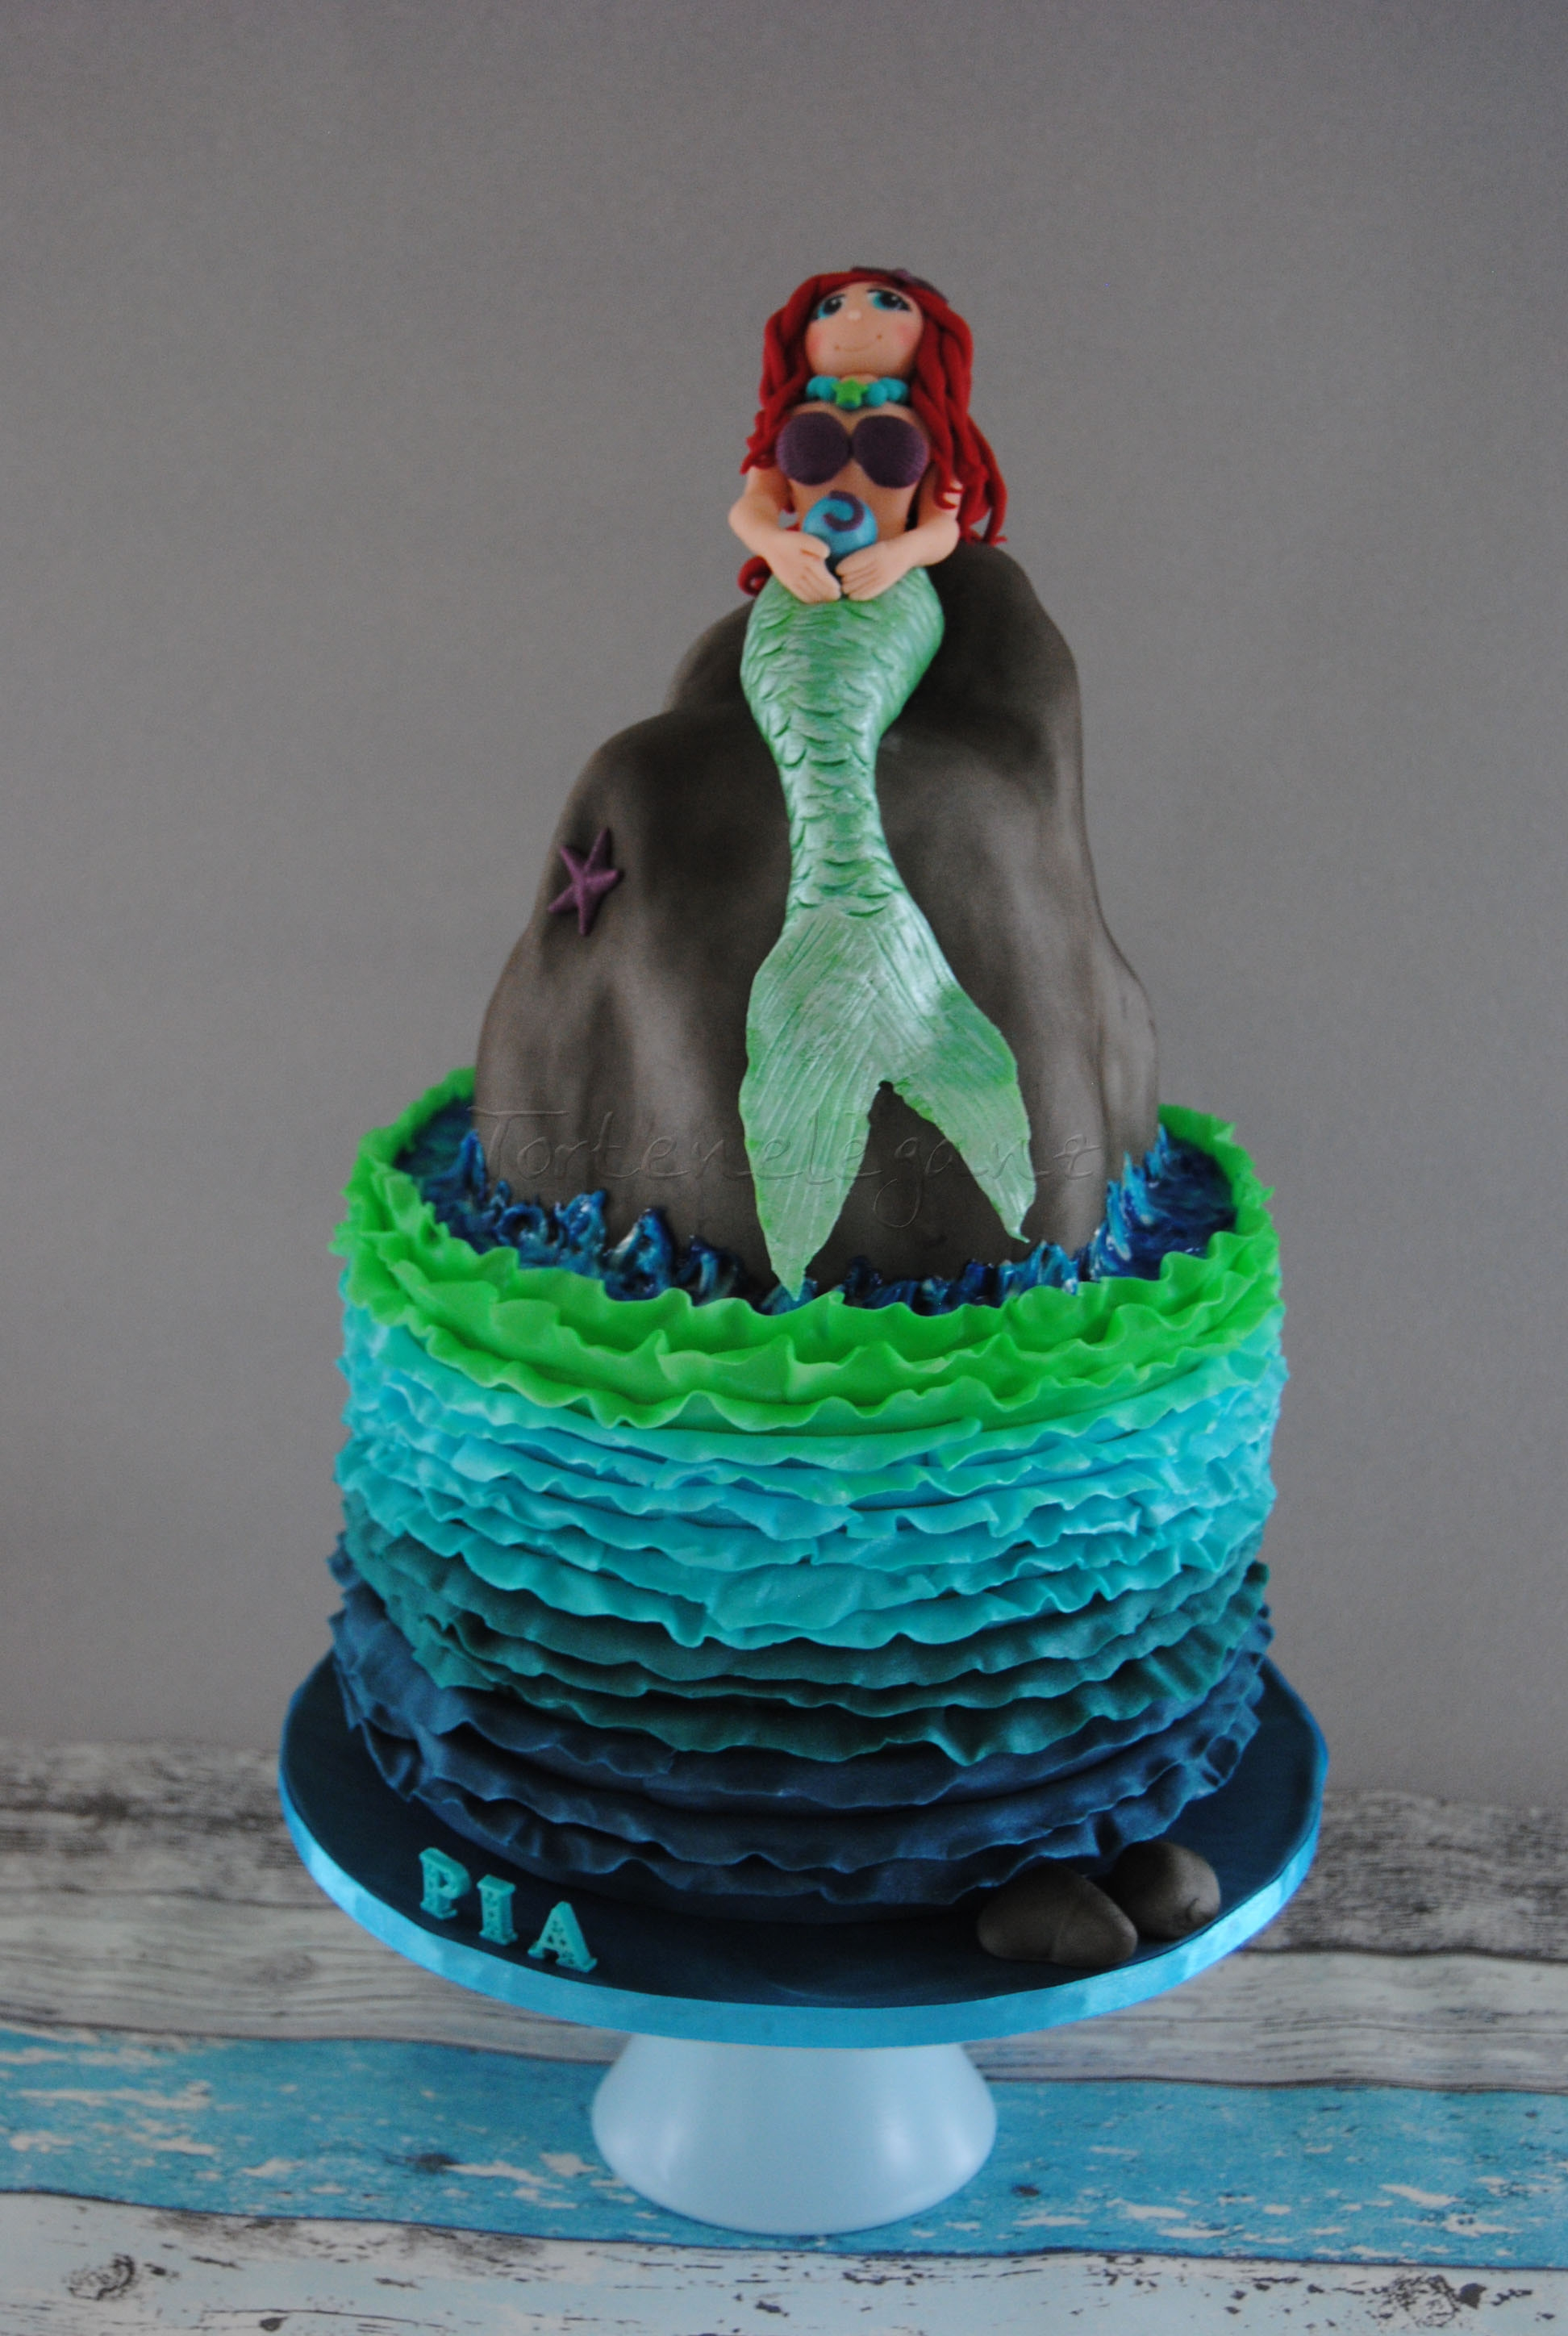 Birthday Cake Images Daughter : Mermaid Birthday Cake For My Daughter - CakeCentral.com